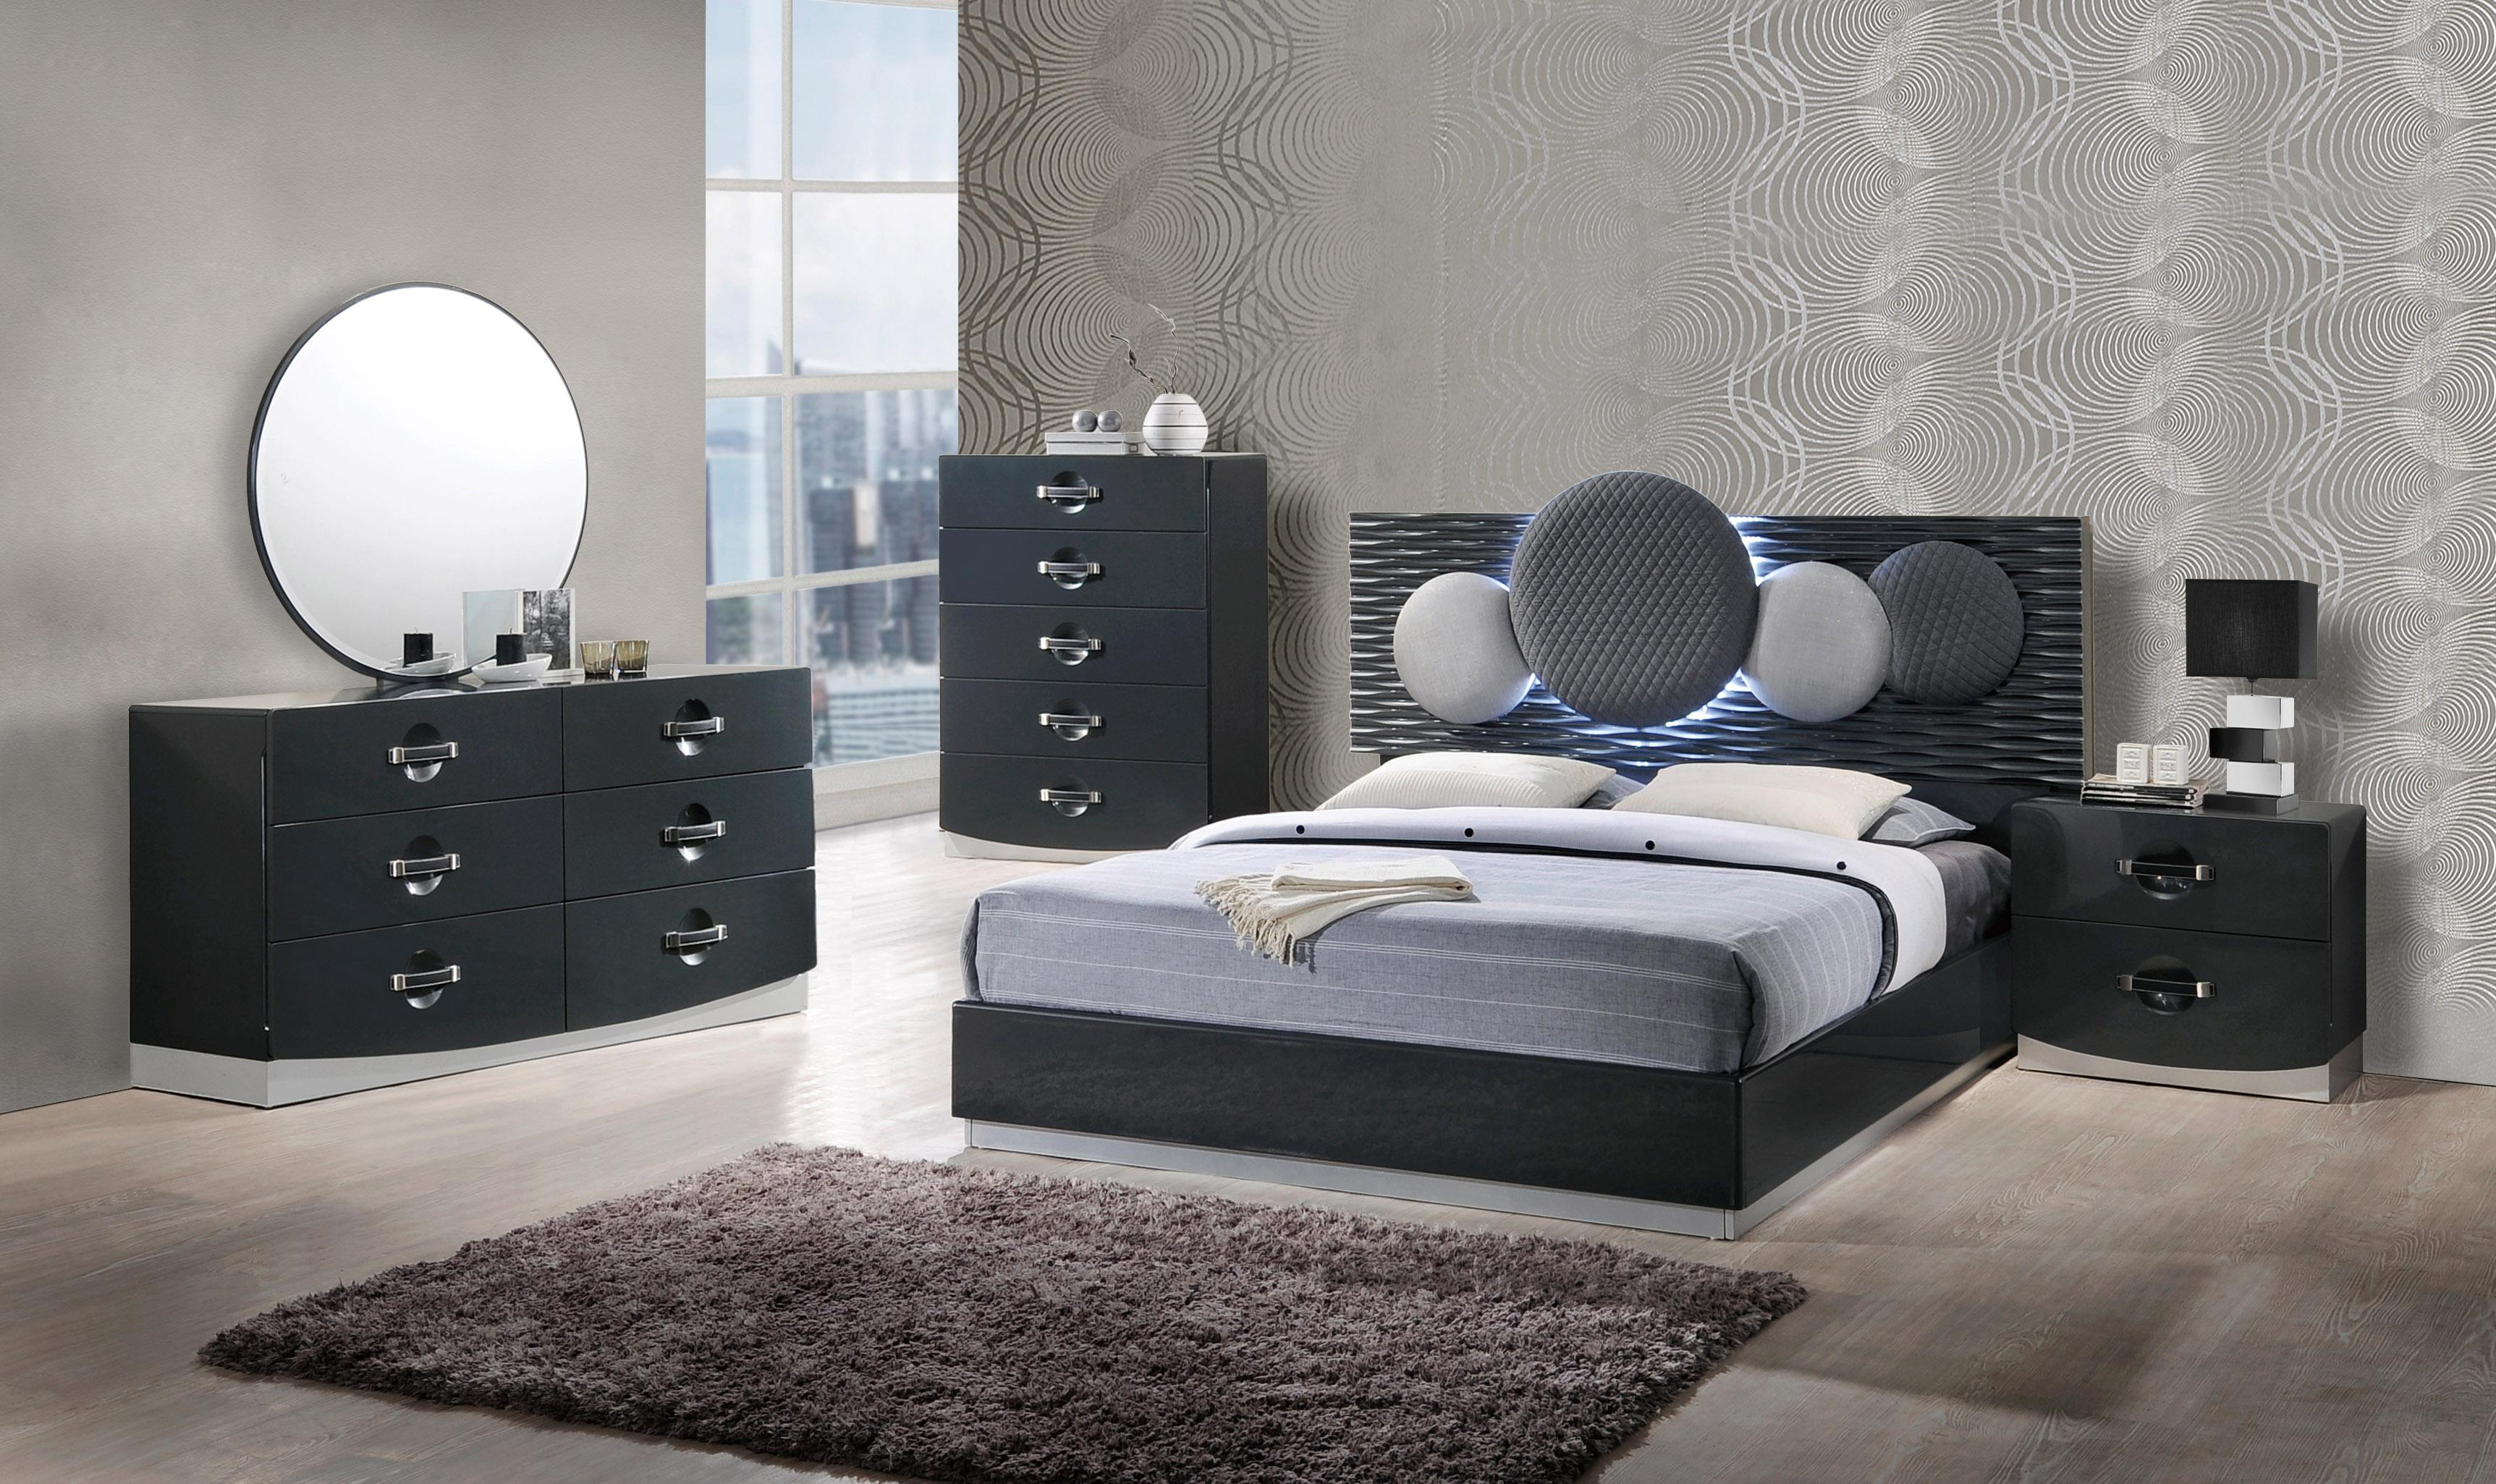 Contemporary dark grey finish led bedroom set chicago illinois global dolce Modern sofas to go with any type of decor